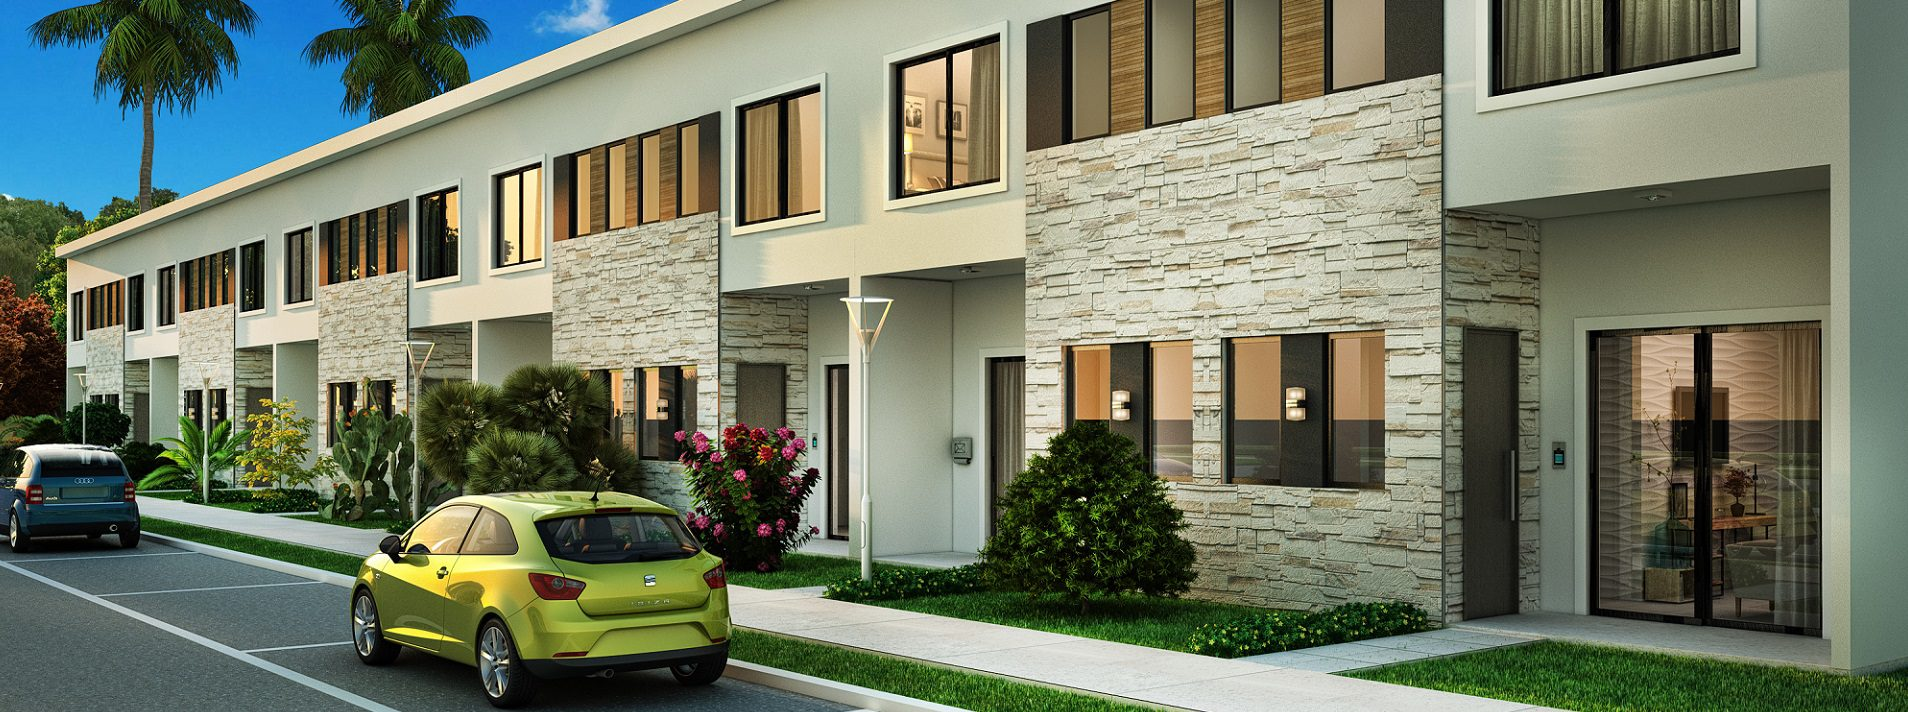 Vittoria-Gardens-Miami-Townhouses-Front-View-3beds-panoramic-e1470860230856-1